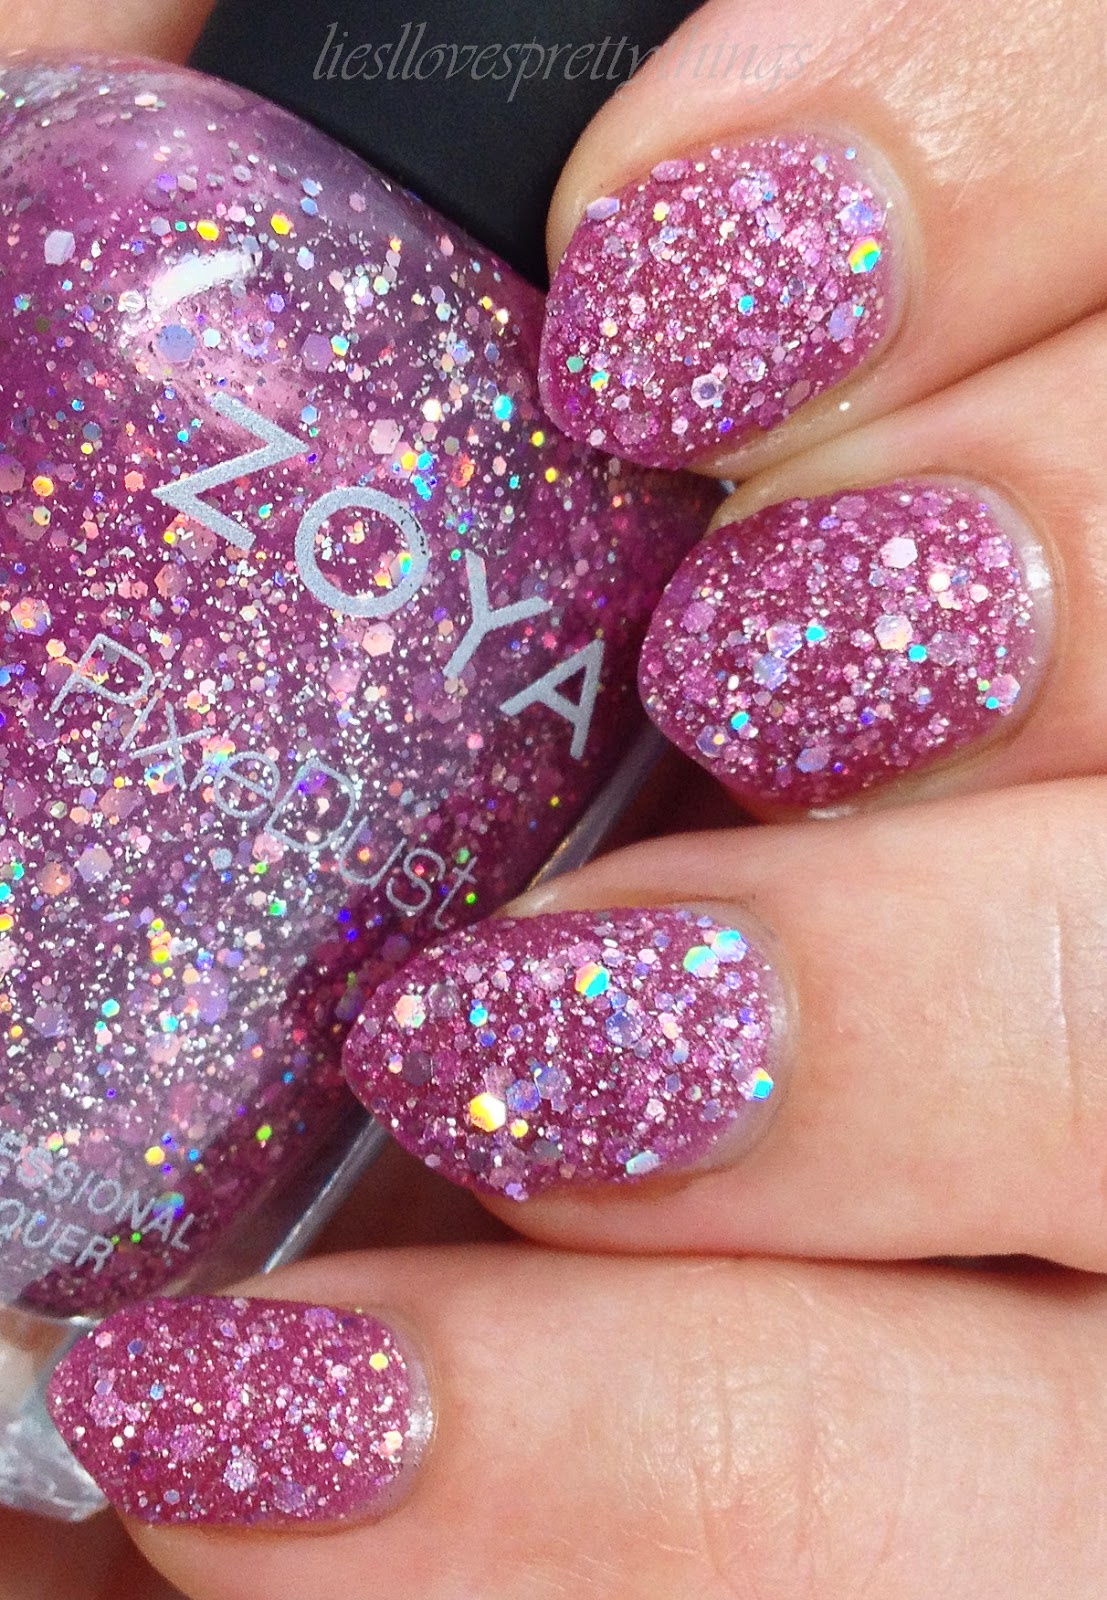 Zoya Magical Pixie Arlo swatch and review